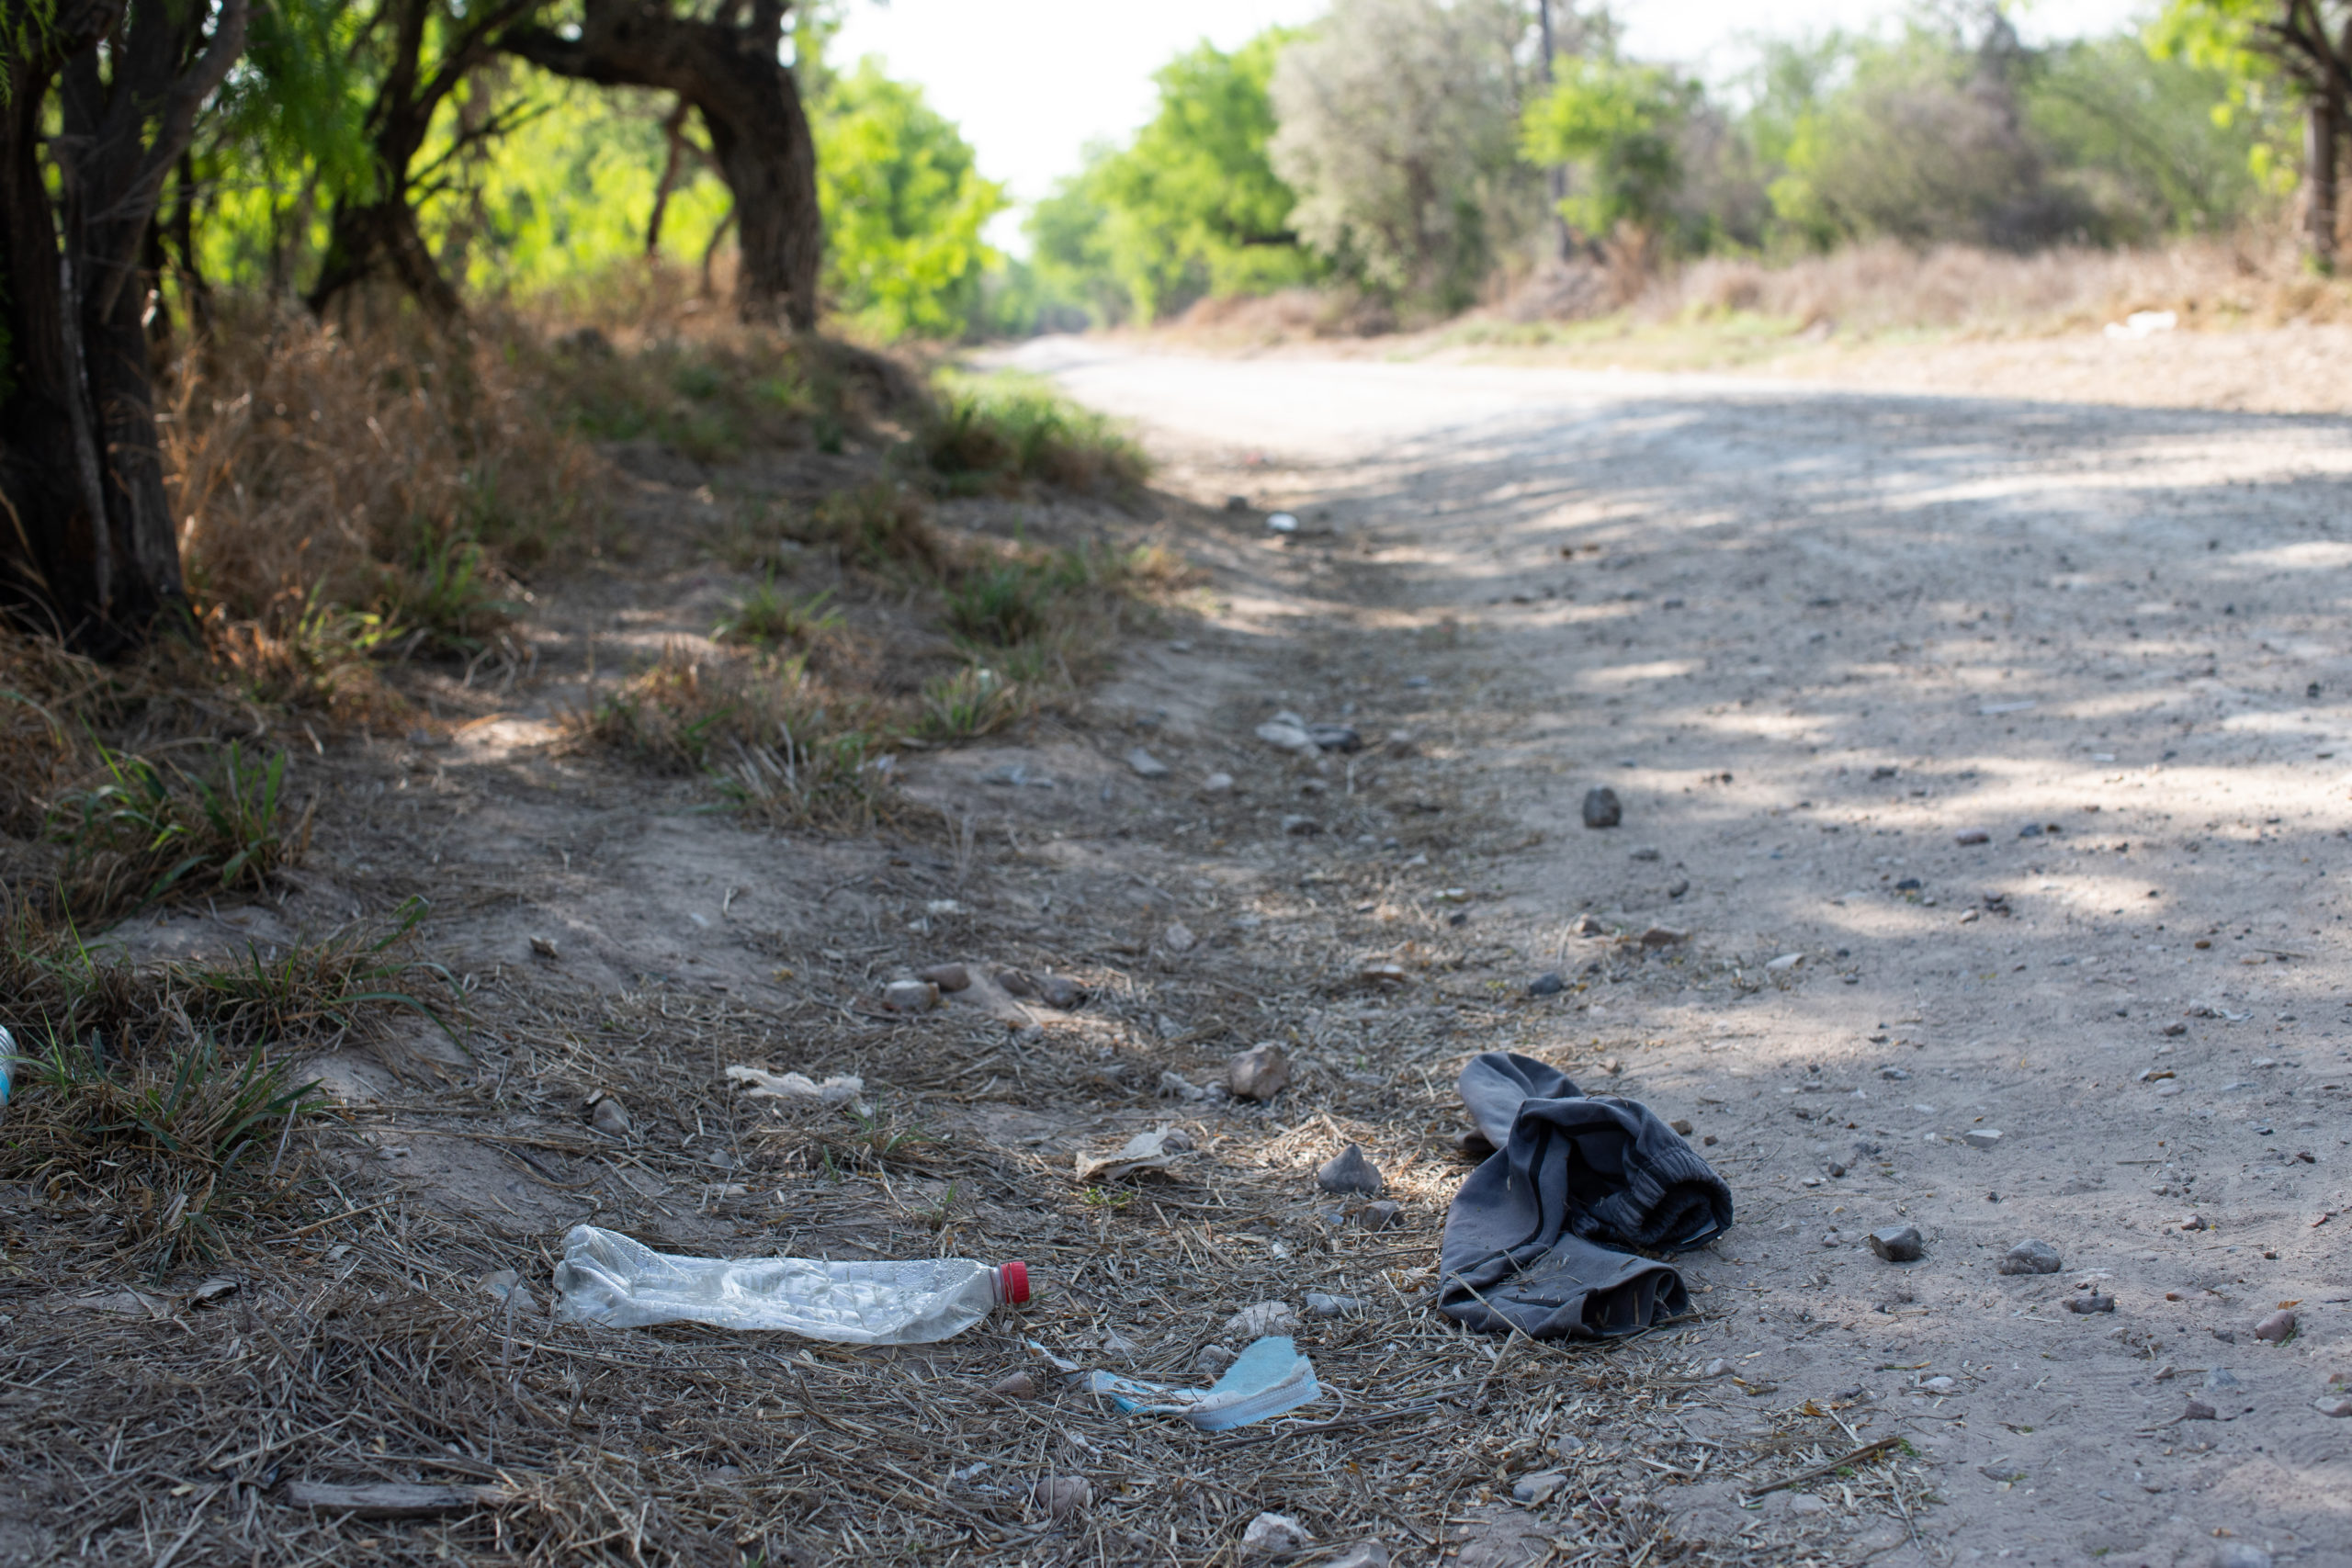 A private landowner has found increasing amounts of trash left behind by illegal migrants including medication, bags, clothing and bottles as they walk to a Customs and Border Protection field processing facility under the Anzalduas International Bridge near Mission, Texas, on March 26, 2021. (Kaylee Greenlee - Daily Caller News Foundation)